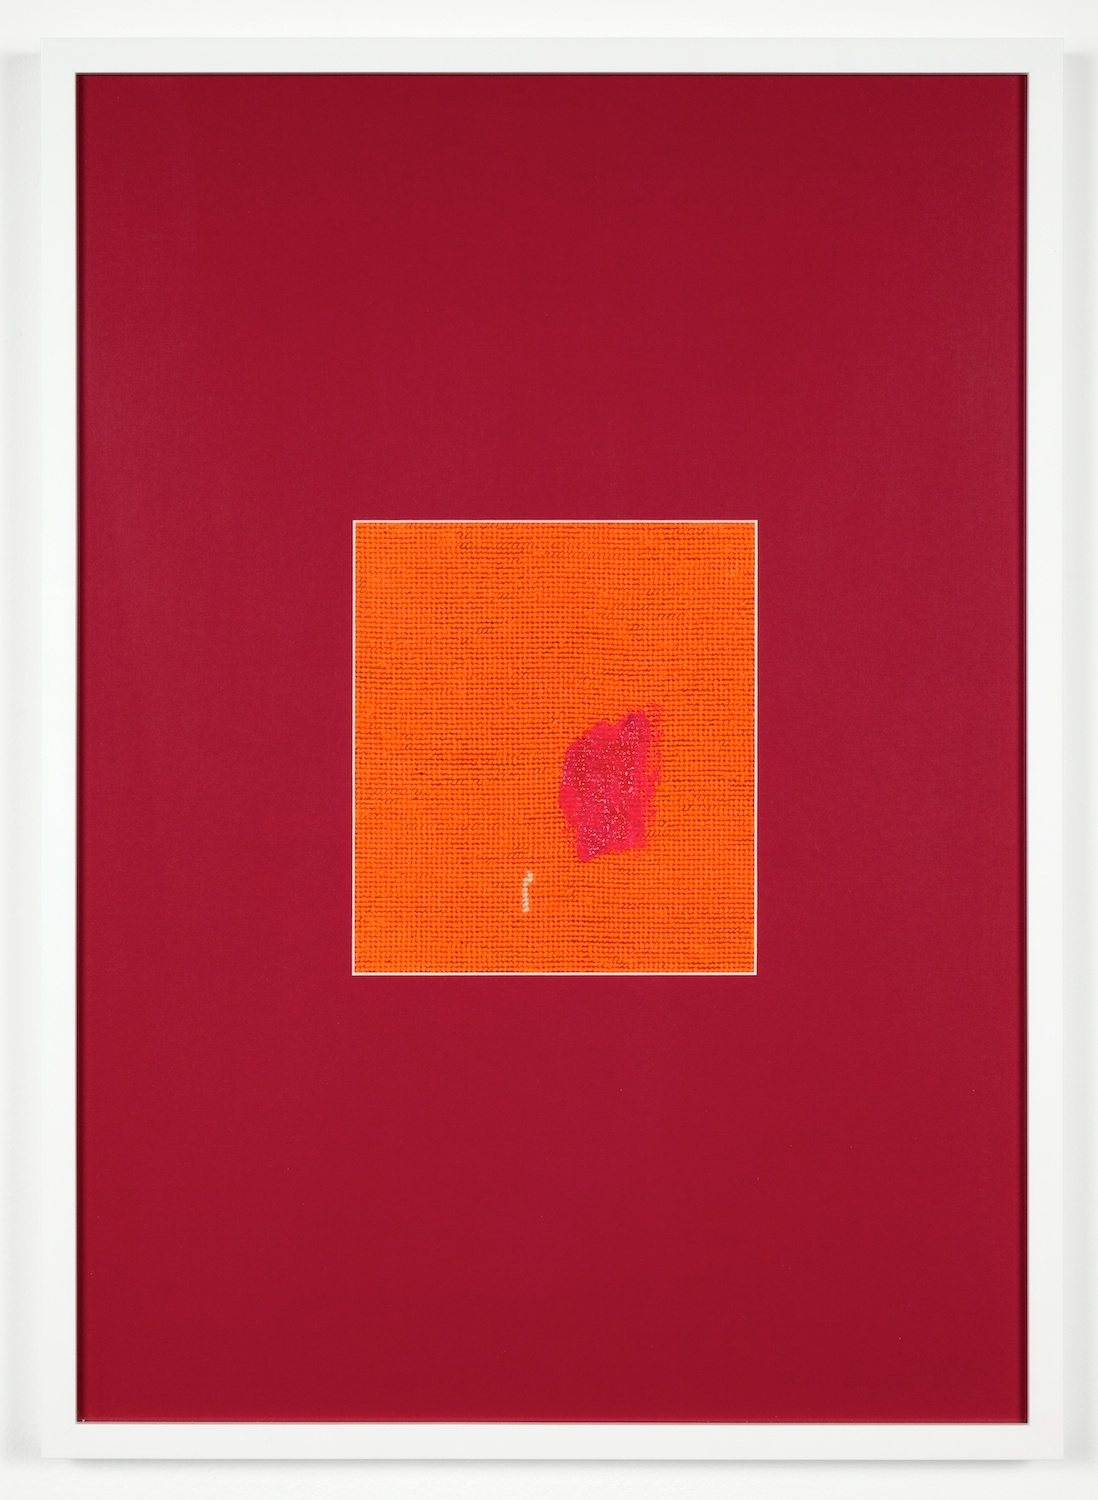 Verena Dengler  shmeer  2012 Embroidery, textile paint, passe-partout 28 ⅜h x 20 ½w in VD002